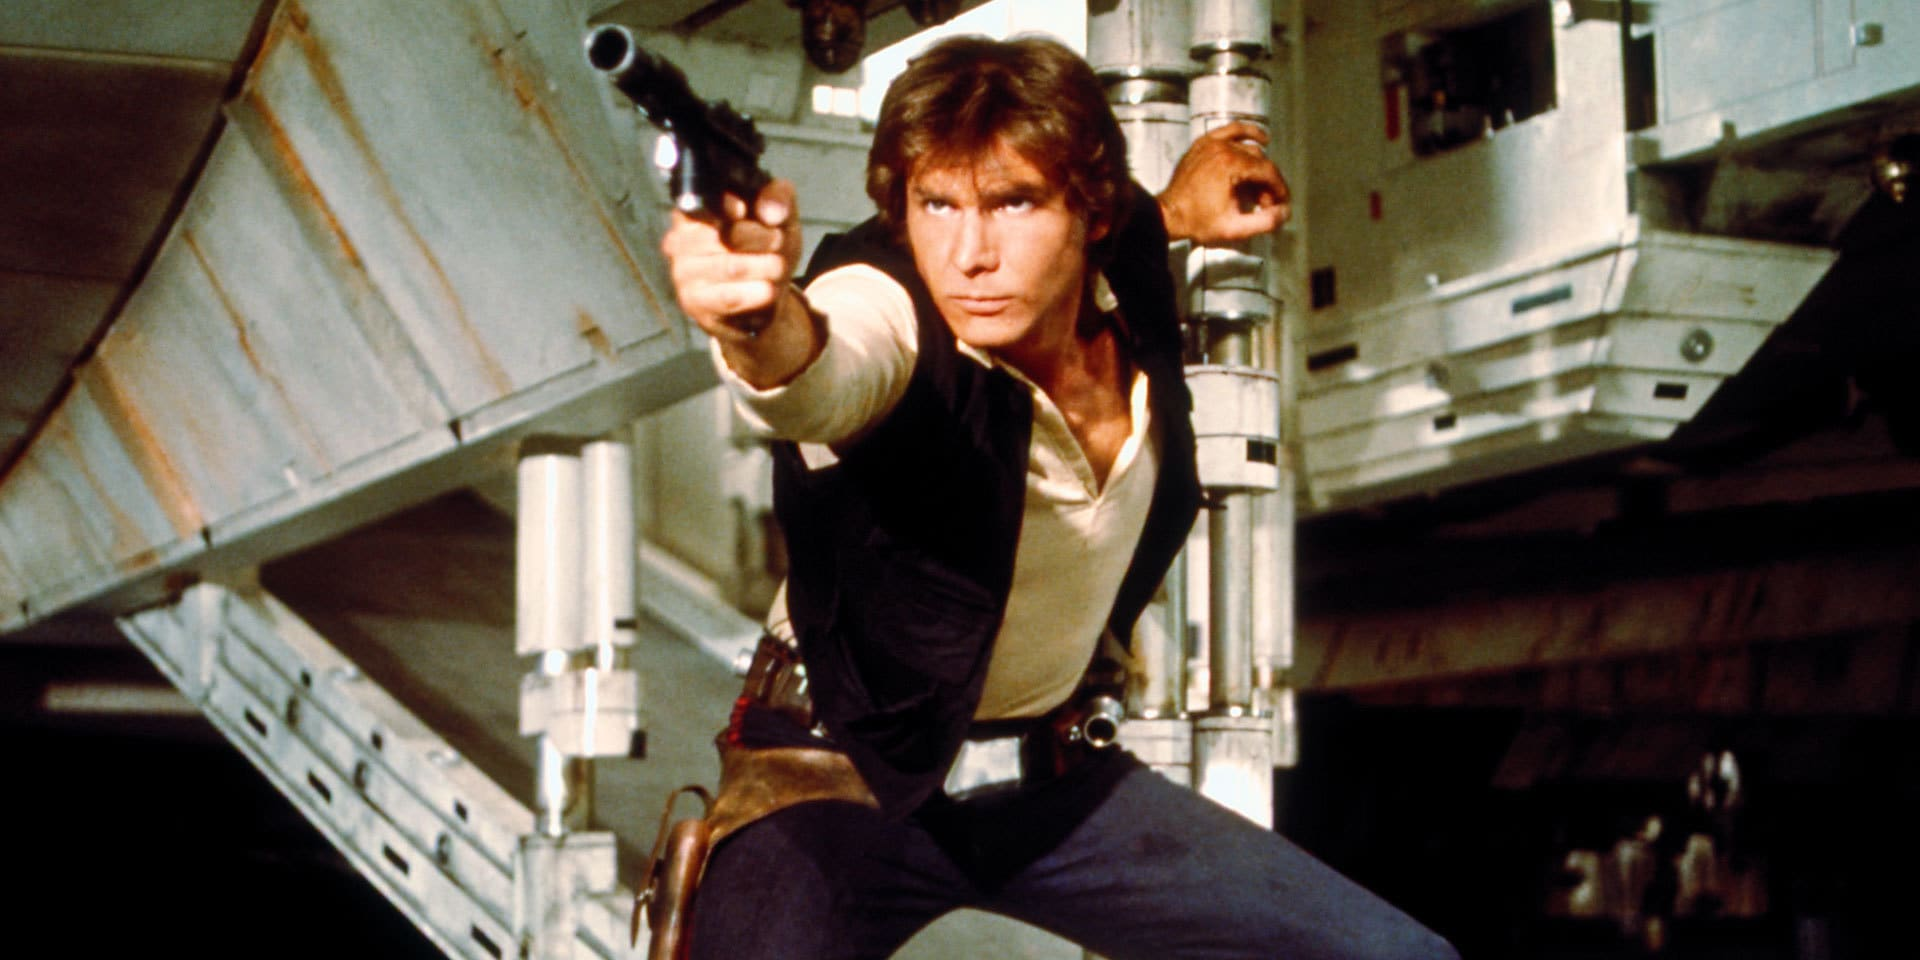 """Han Solo (Harrison Ford) in """"Star Wars: A New Hope"""" (1977)"""